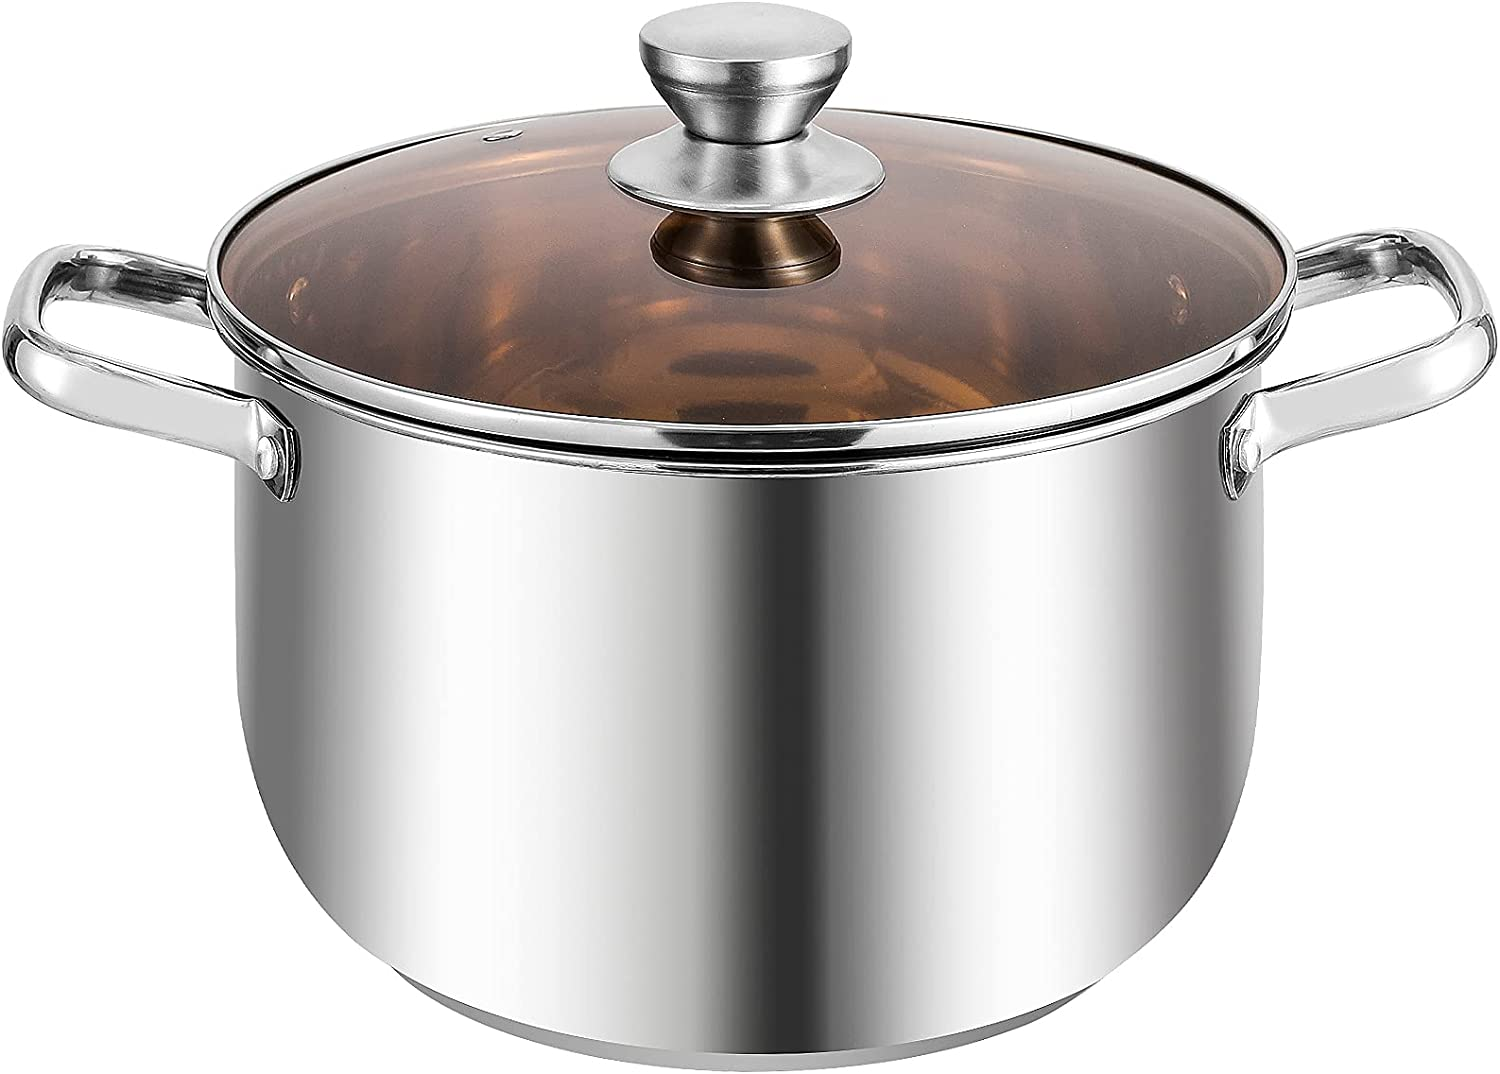 8 QT Soup Deluxe Pot Stainless Pa San Diego Mall Lid Saucepot Steel Stockpotwith